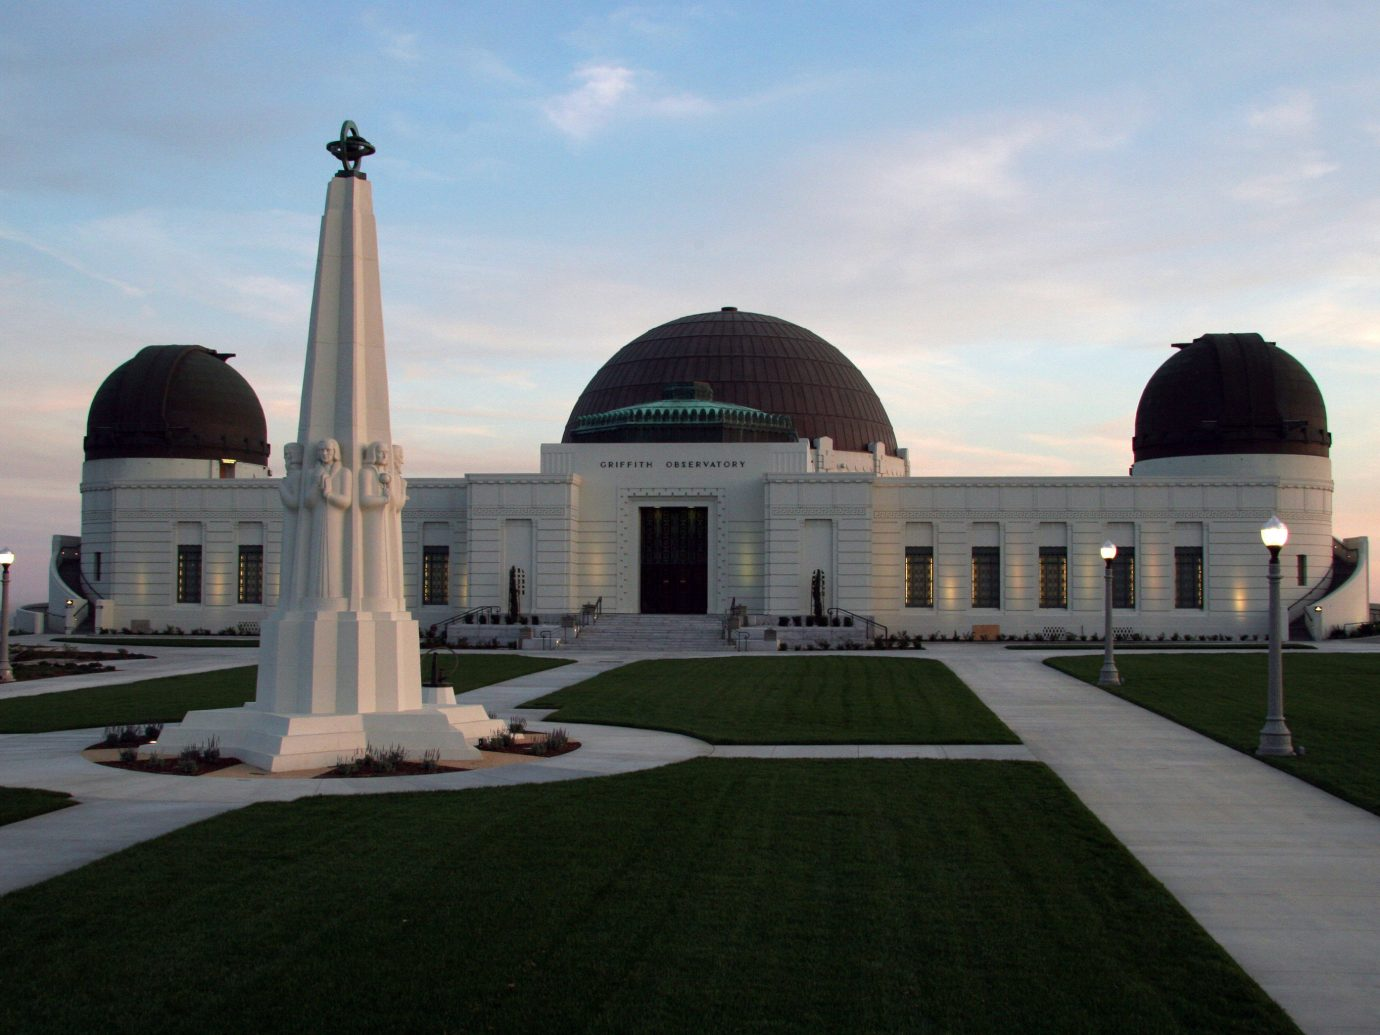 Budget sky outdoor grass building mosque landmark Architecture dome place of worship observatory memorial